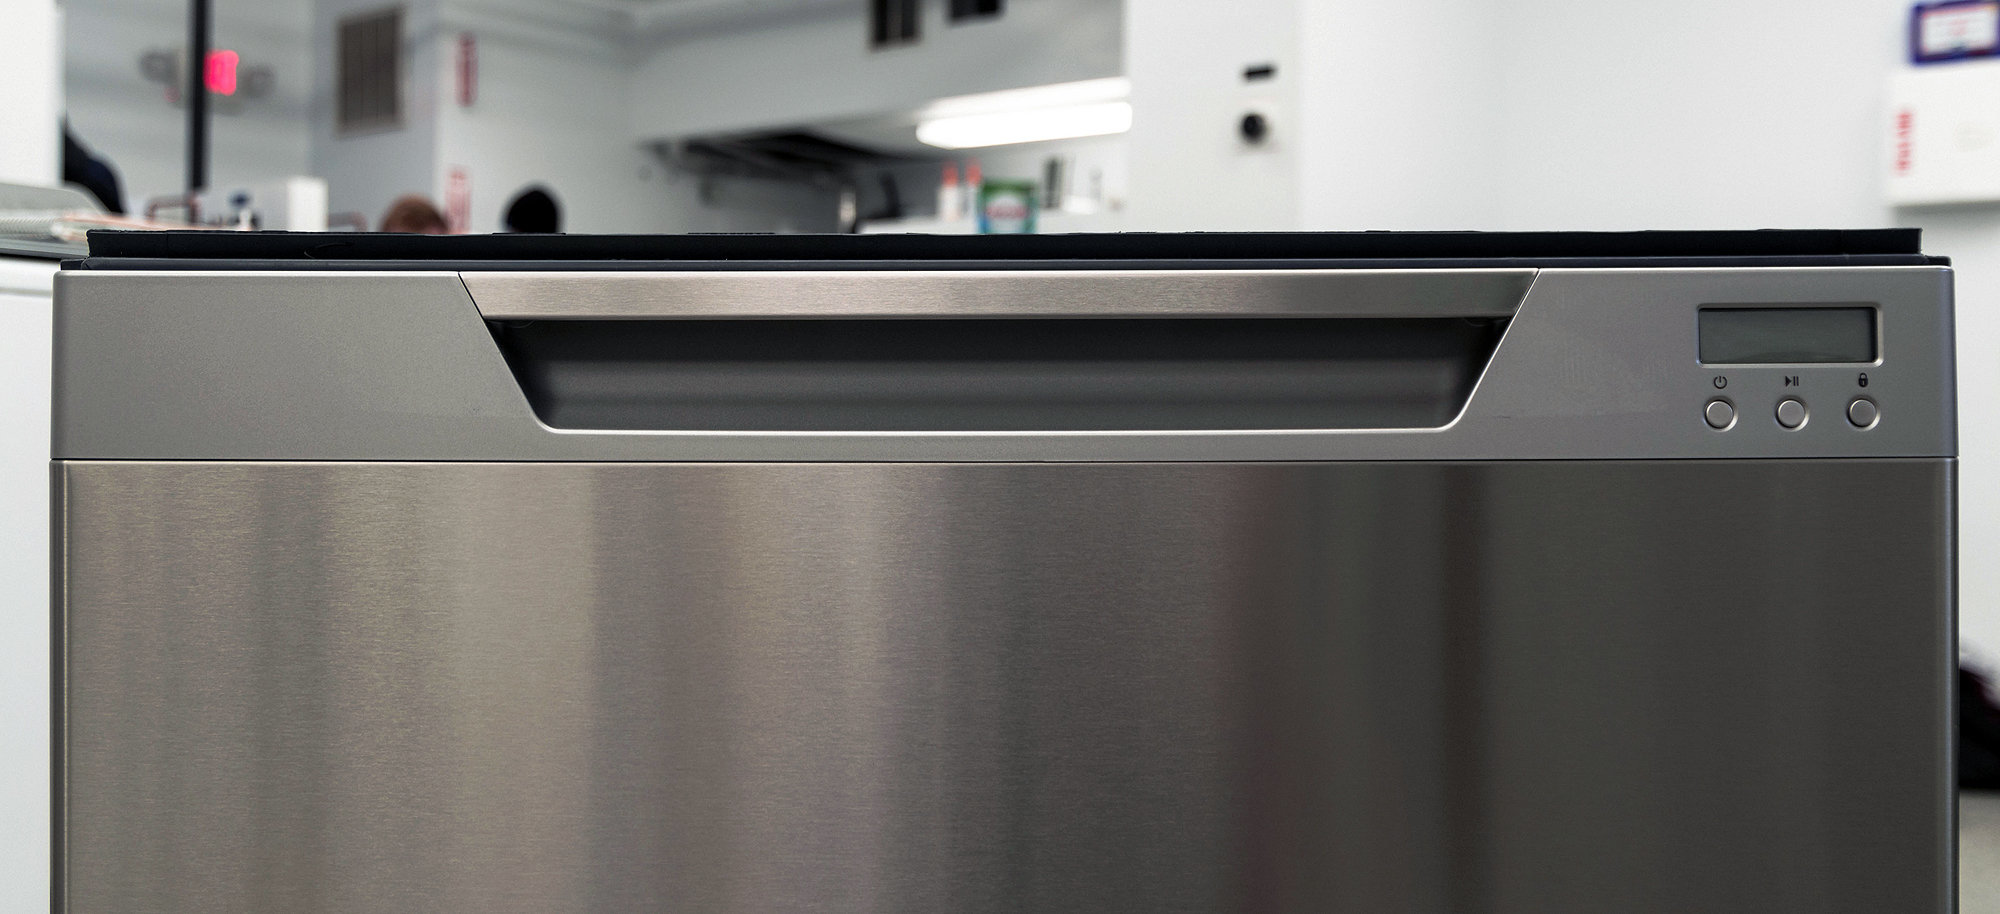 Dishwasher Drawers Vs Standard Fisher Paykel Dd24dchtx7 Drawer Dishwasher Review Reviewedcom